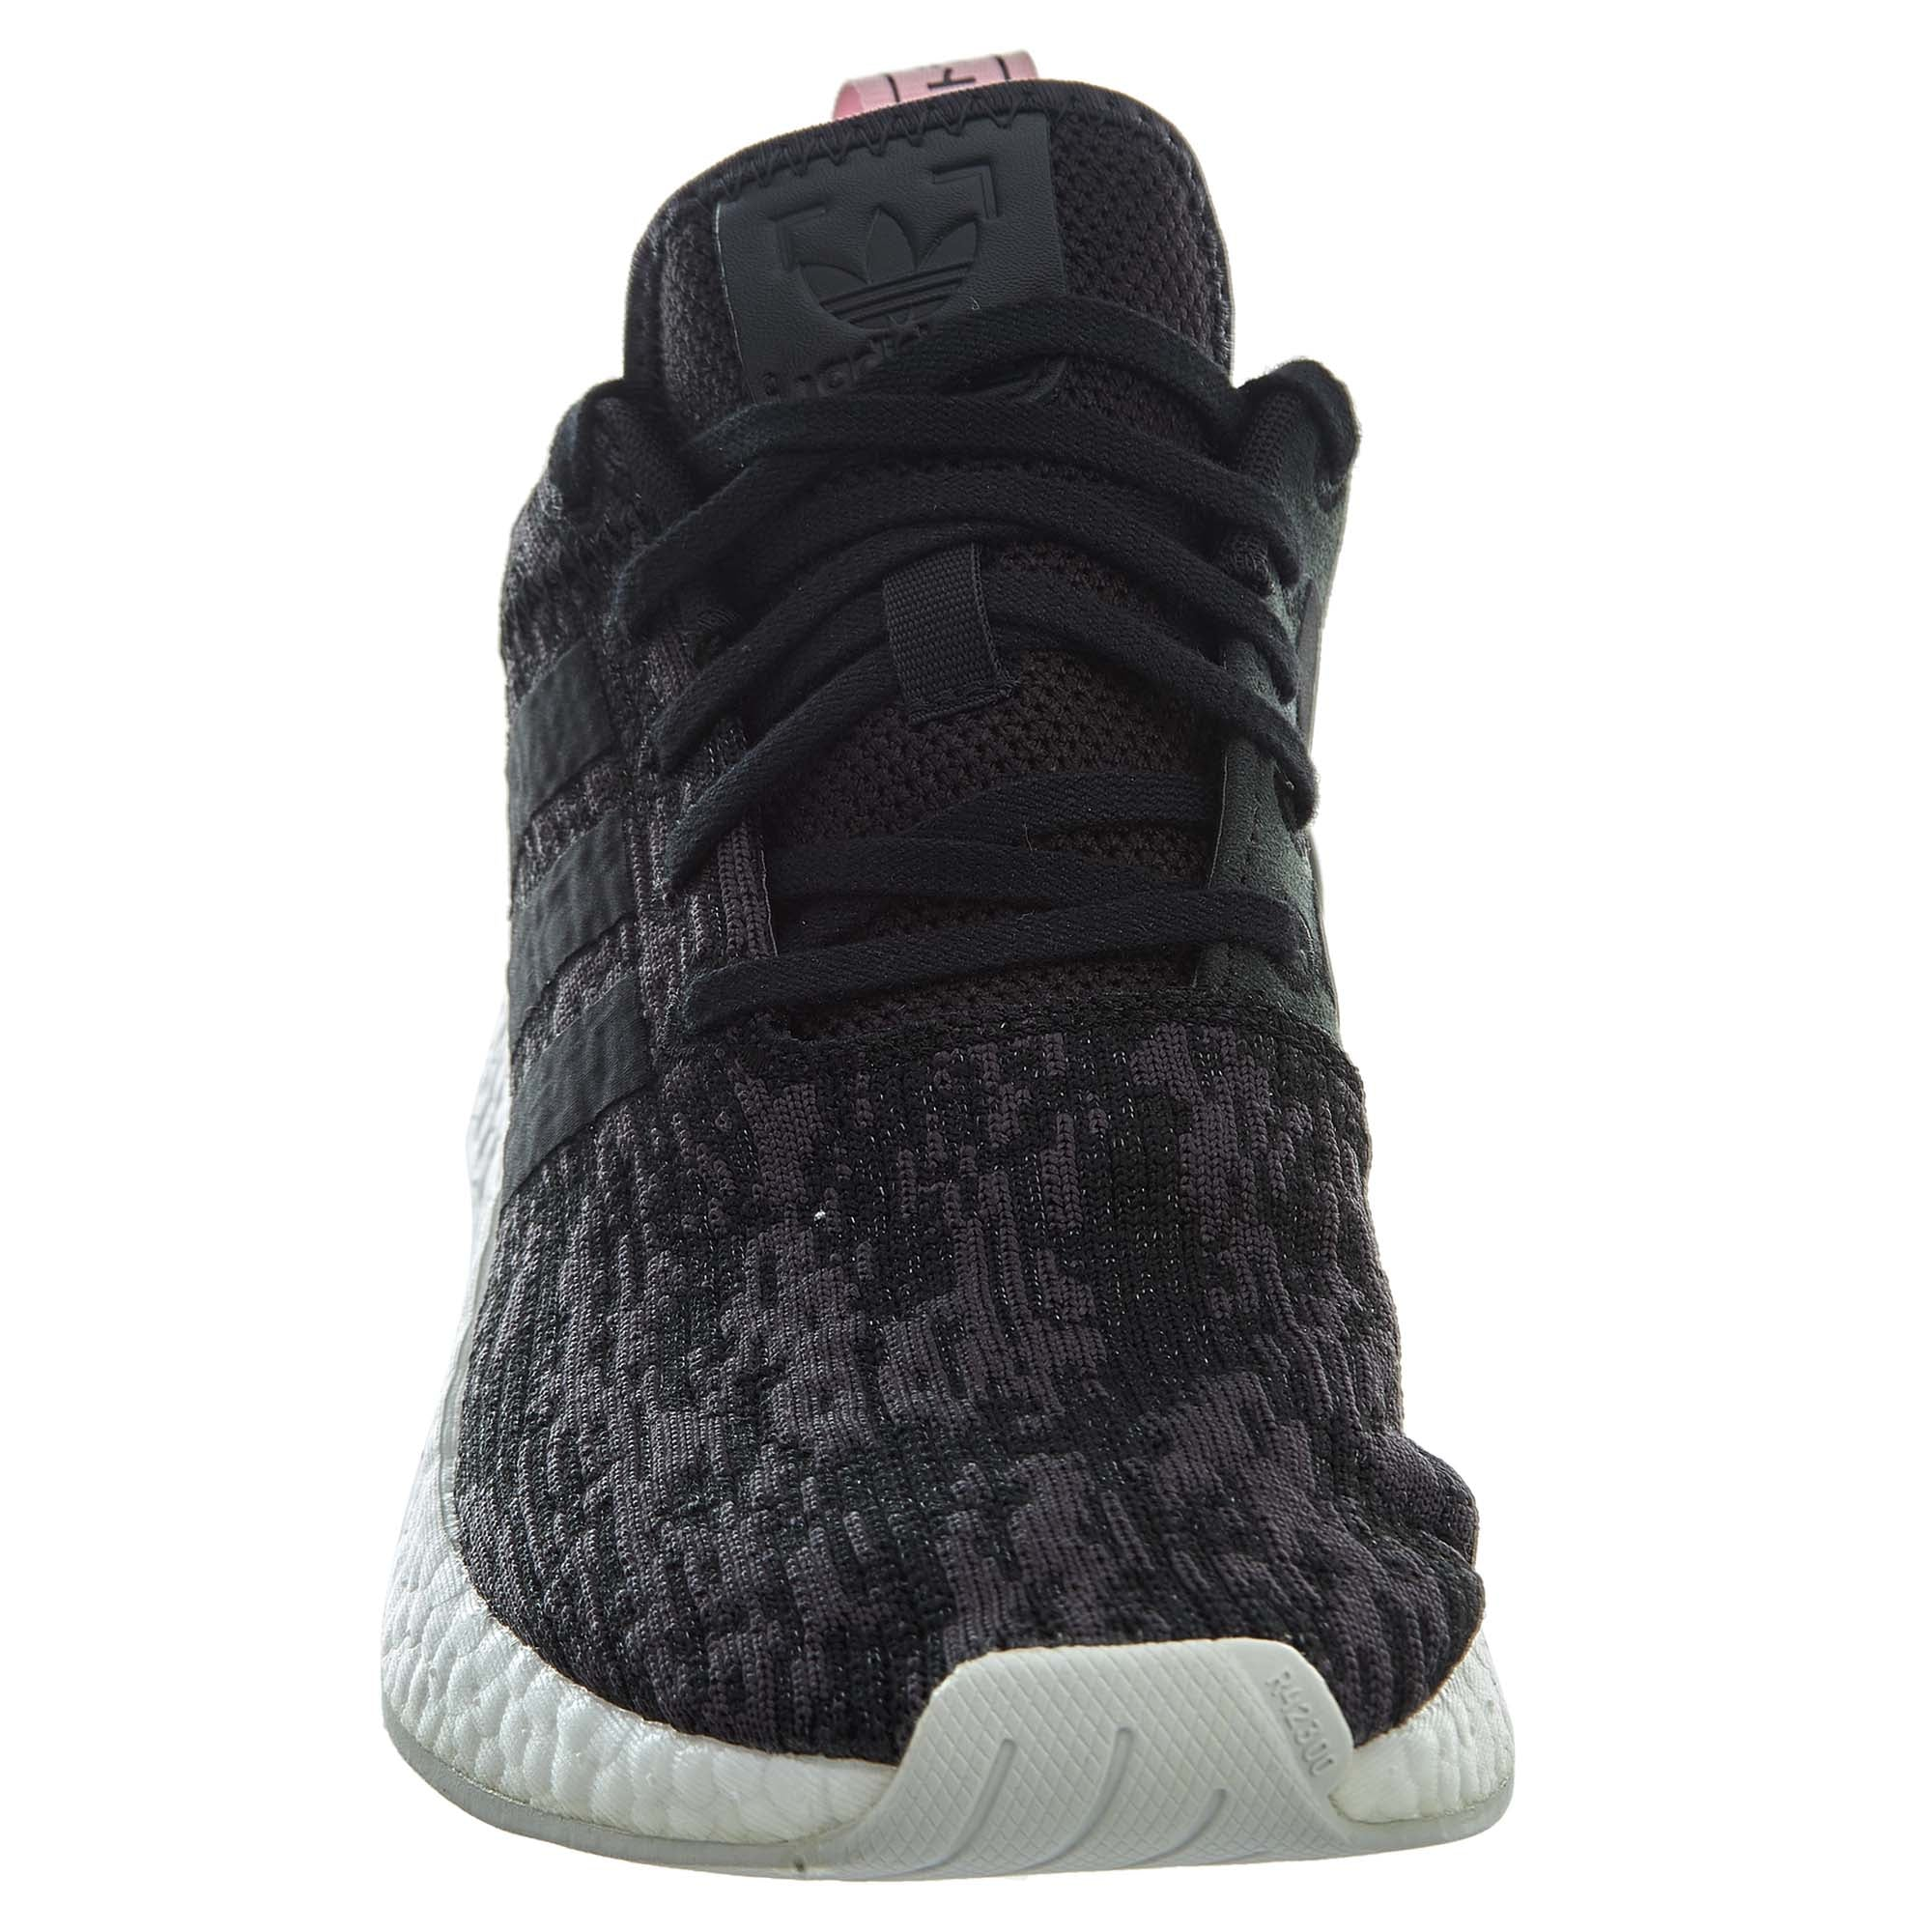 Adidas Nmd_r2 Womens Style : By9314-Blk/Blk/Pink